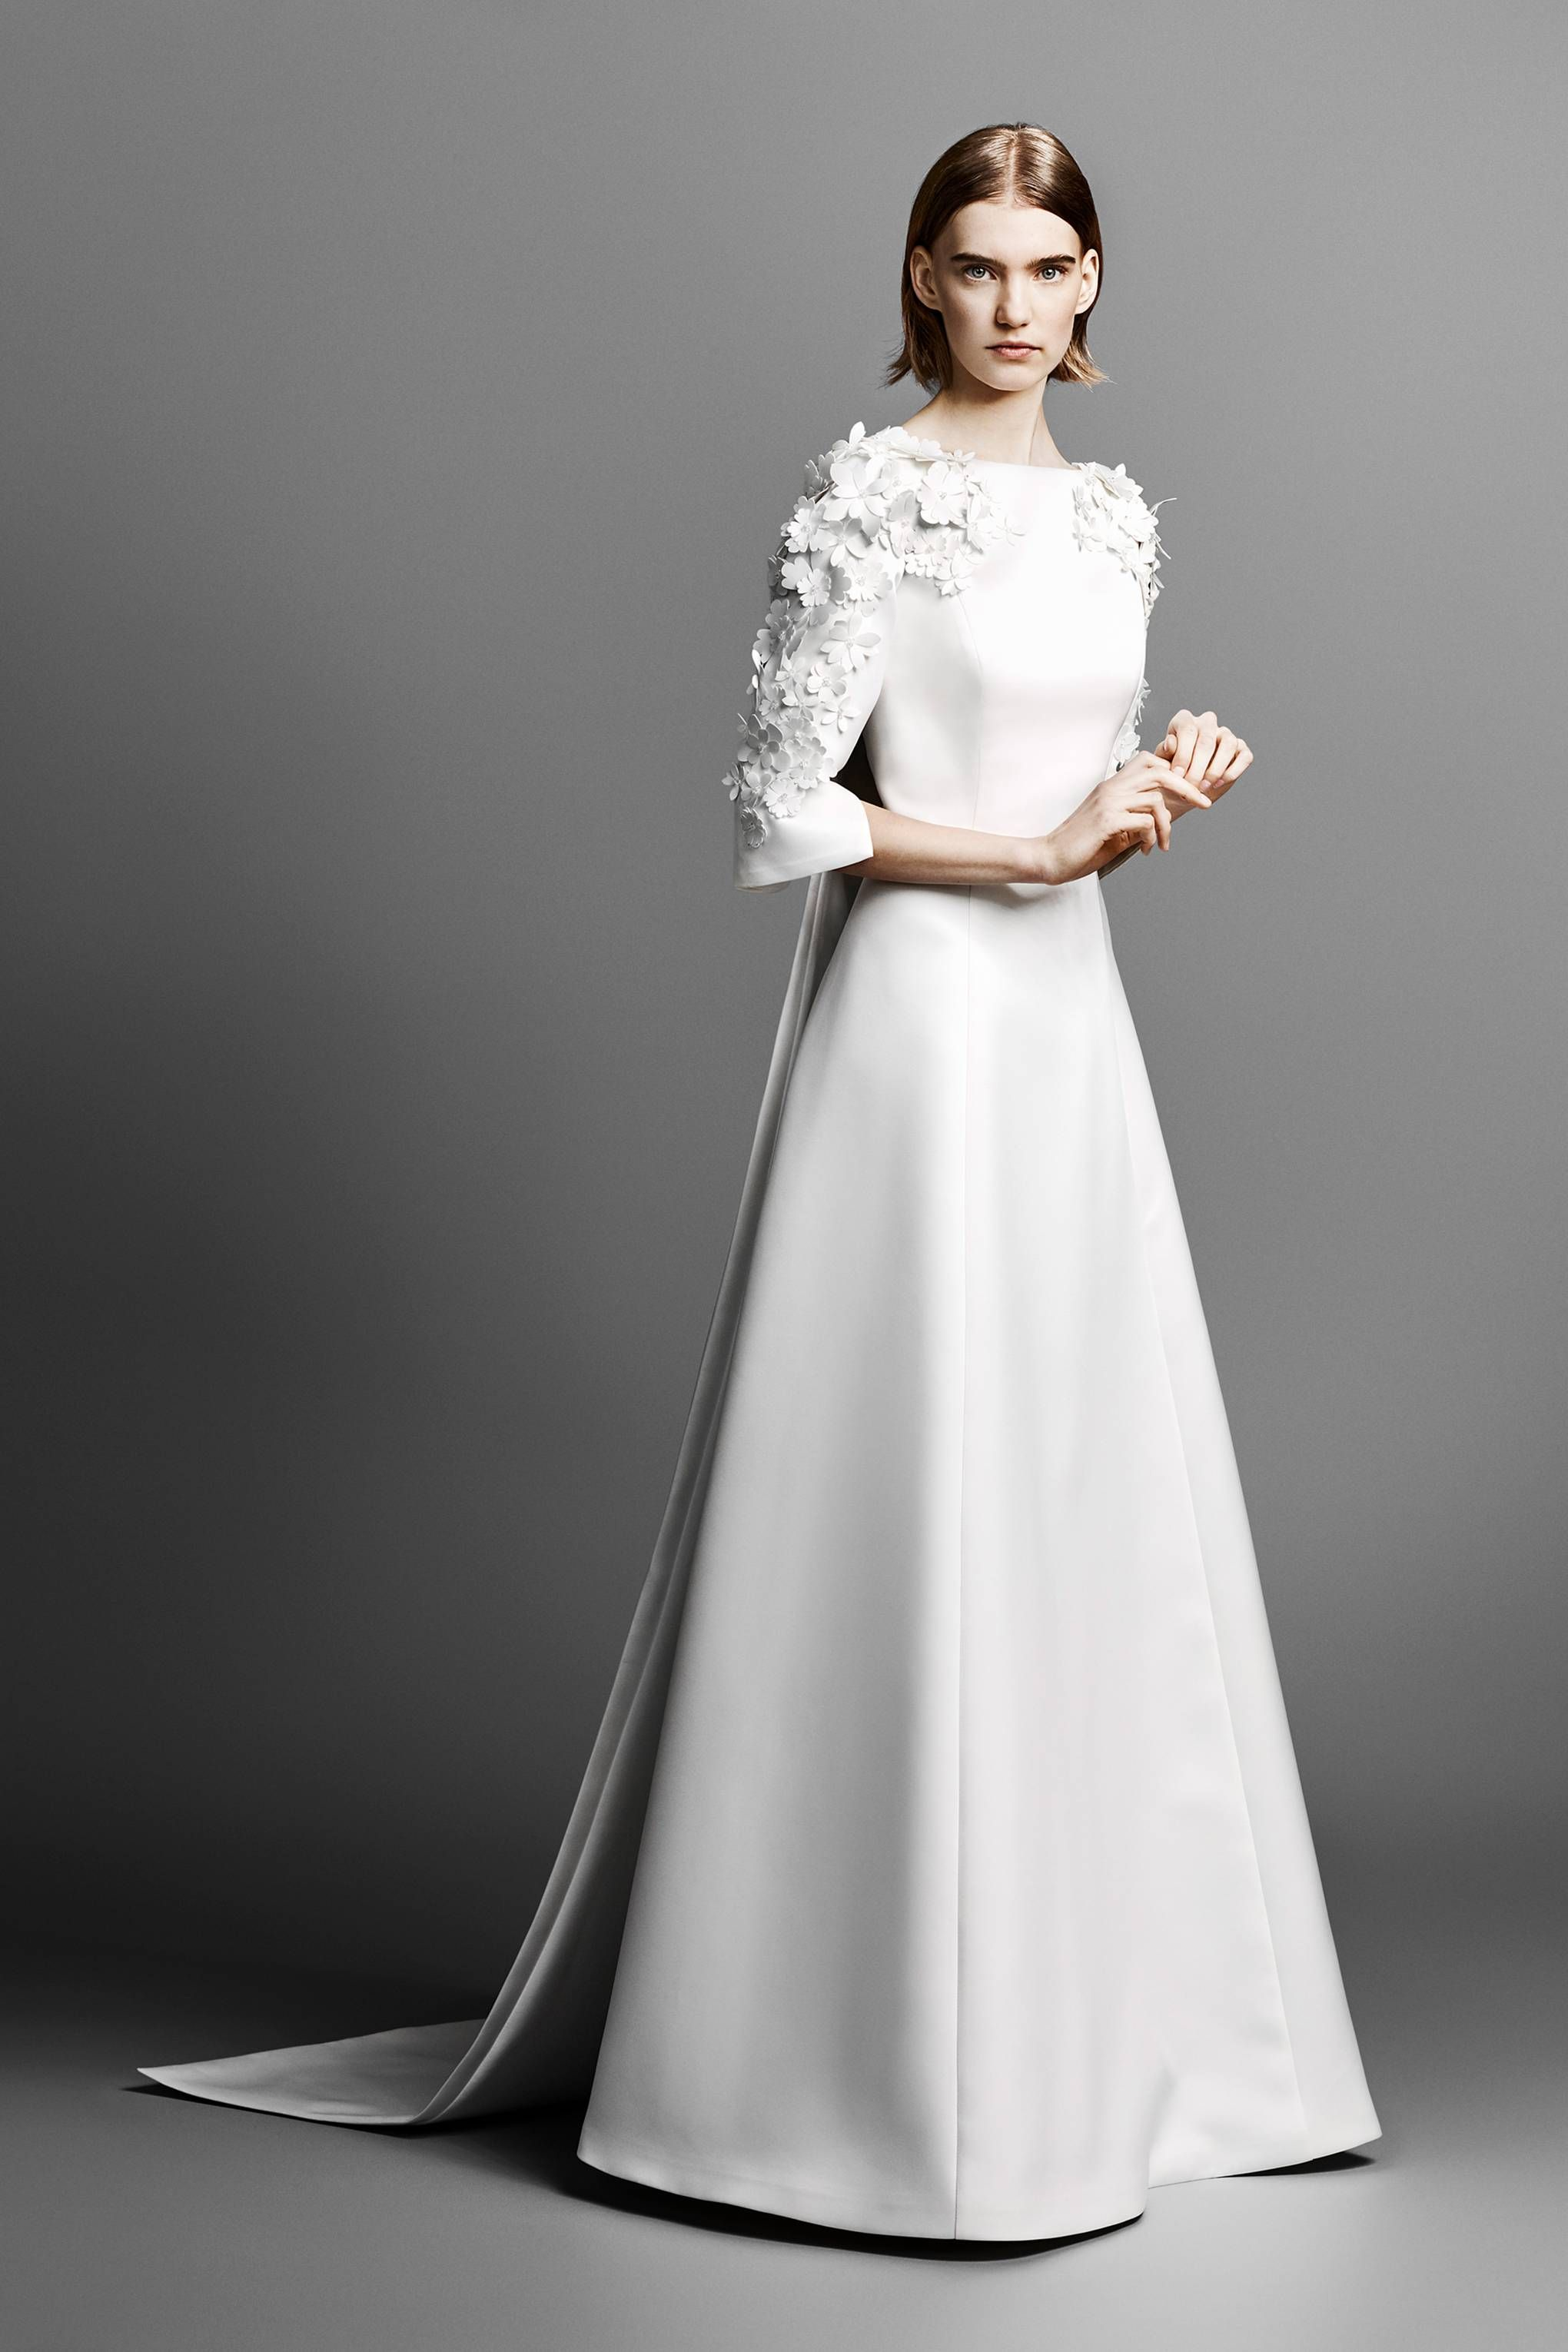 692064dd983 Viktor   Rolf Spring Summer 2019 Bridal Collection